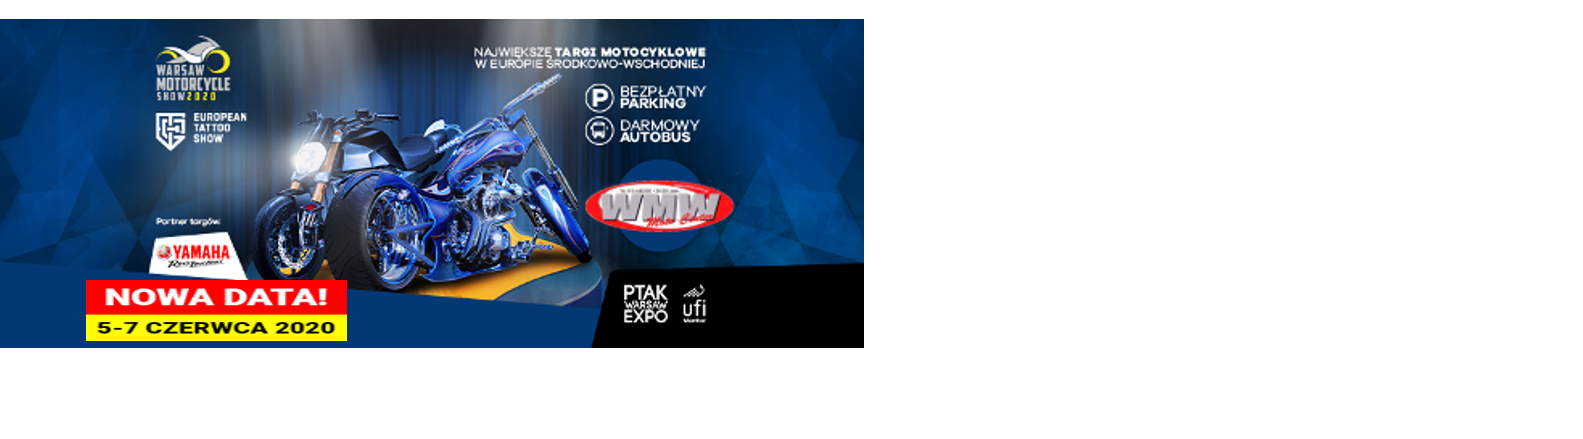 WARSAW MOTORCYCLE SHOW 2020